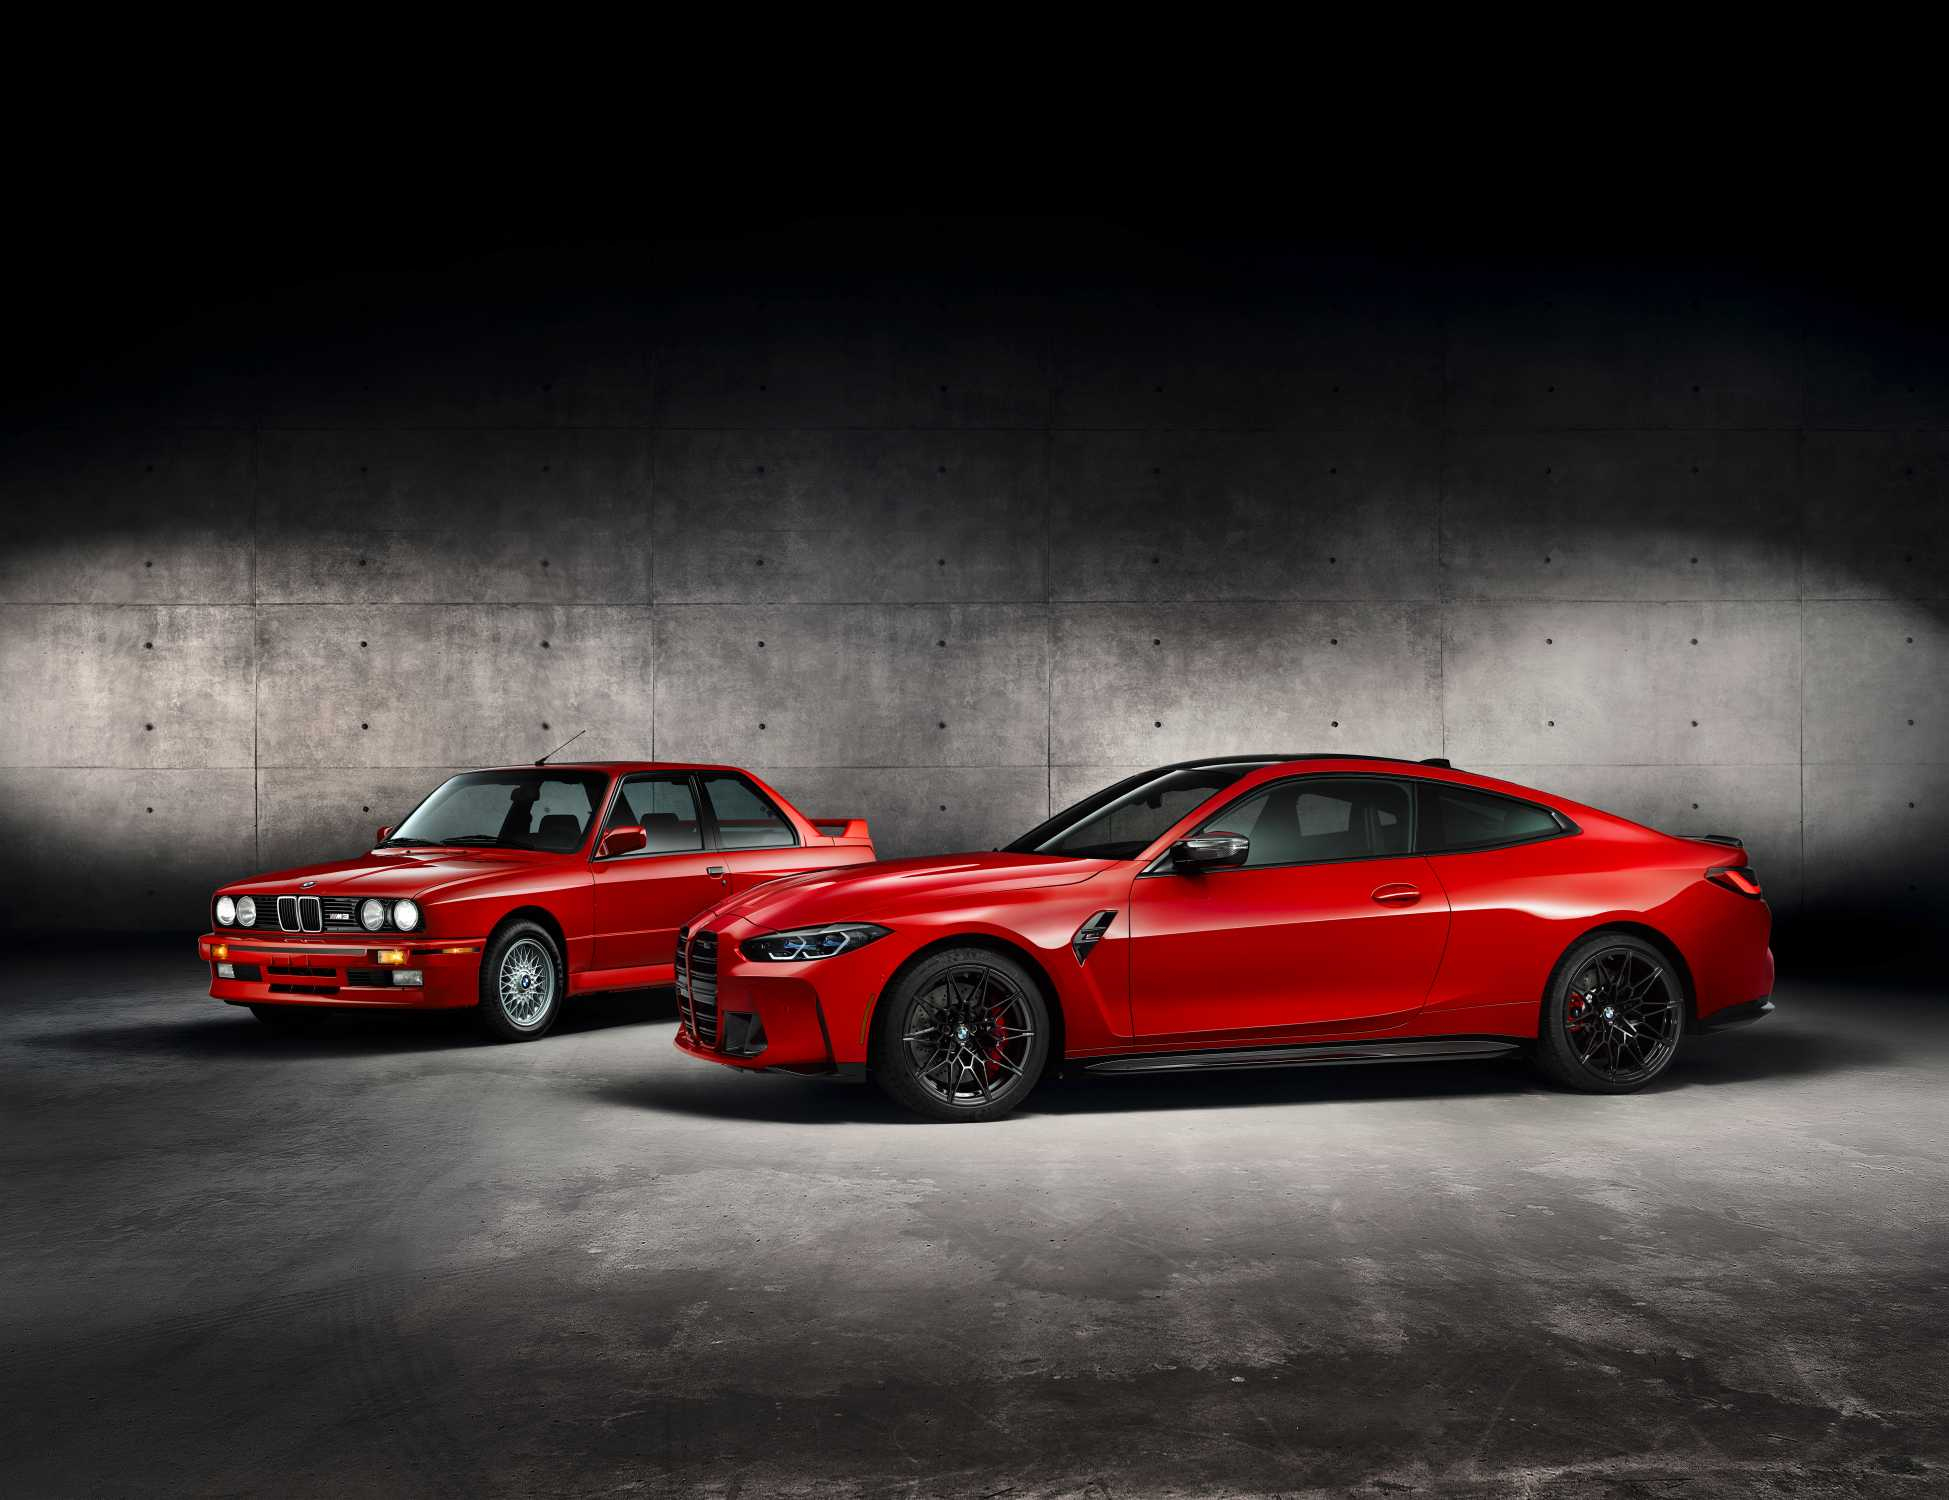 BMW M4 Design Study by KITH and Ronnie Fiegs E30 (10/2020).